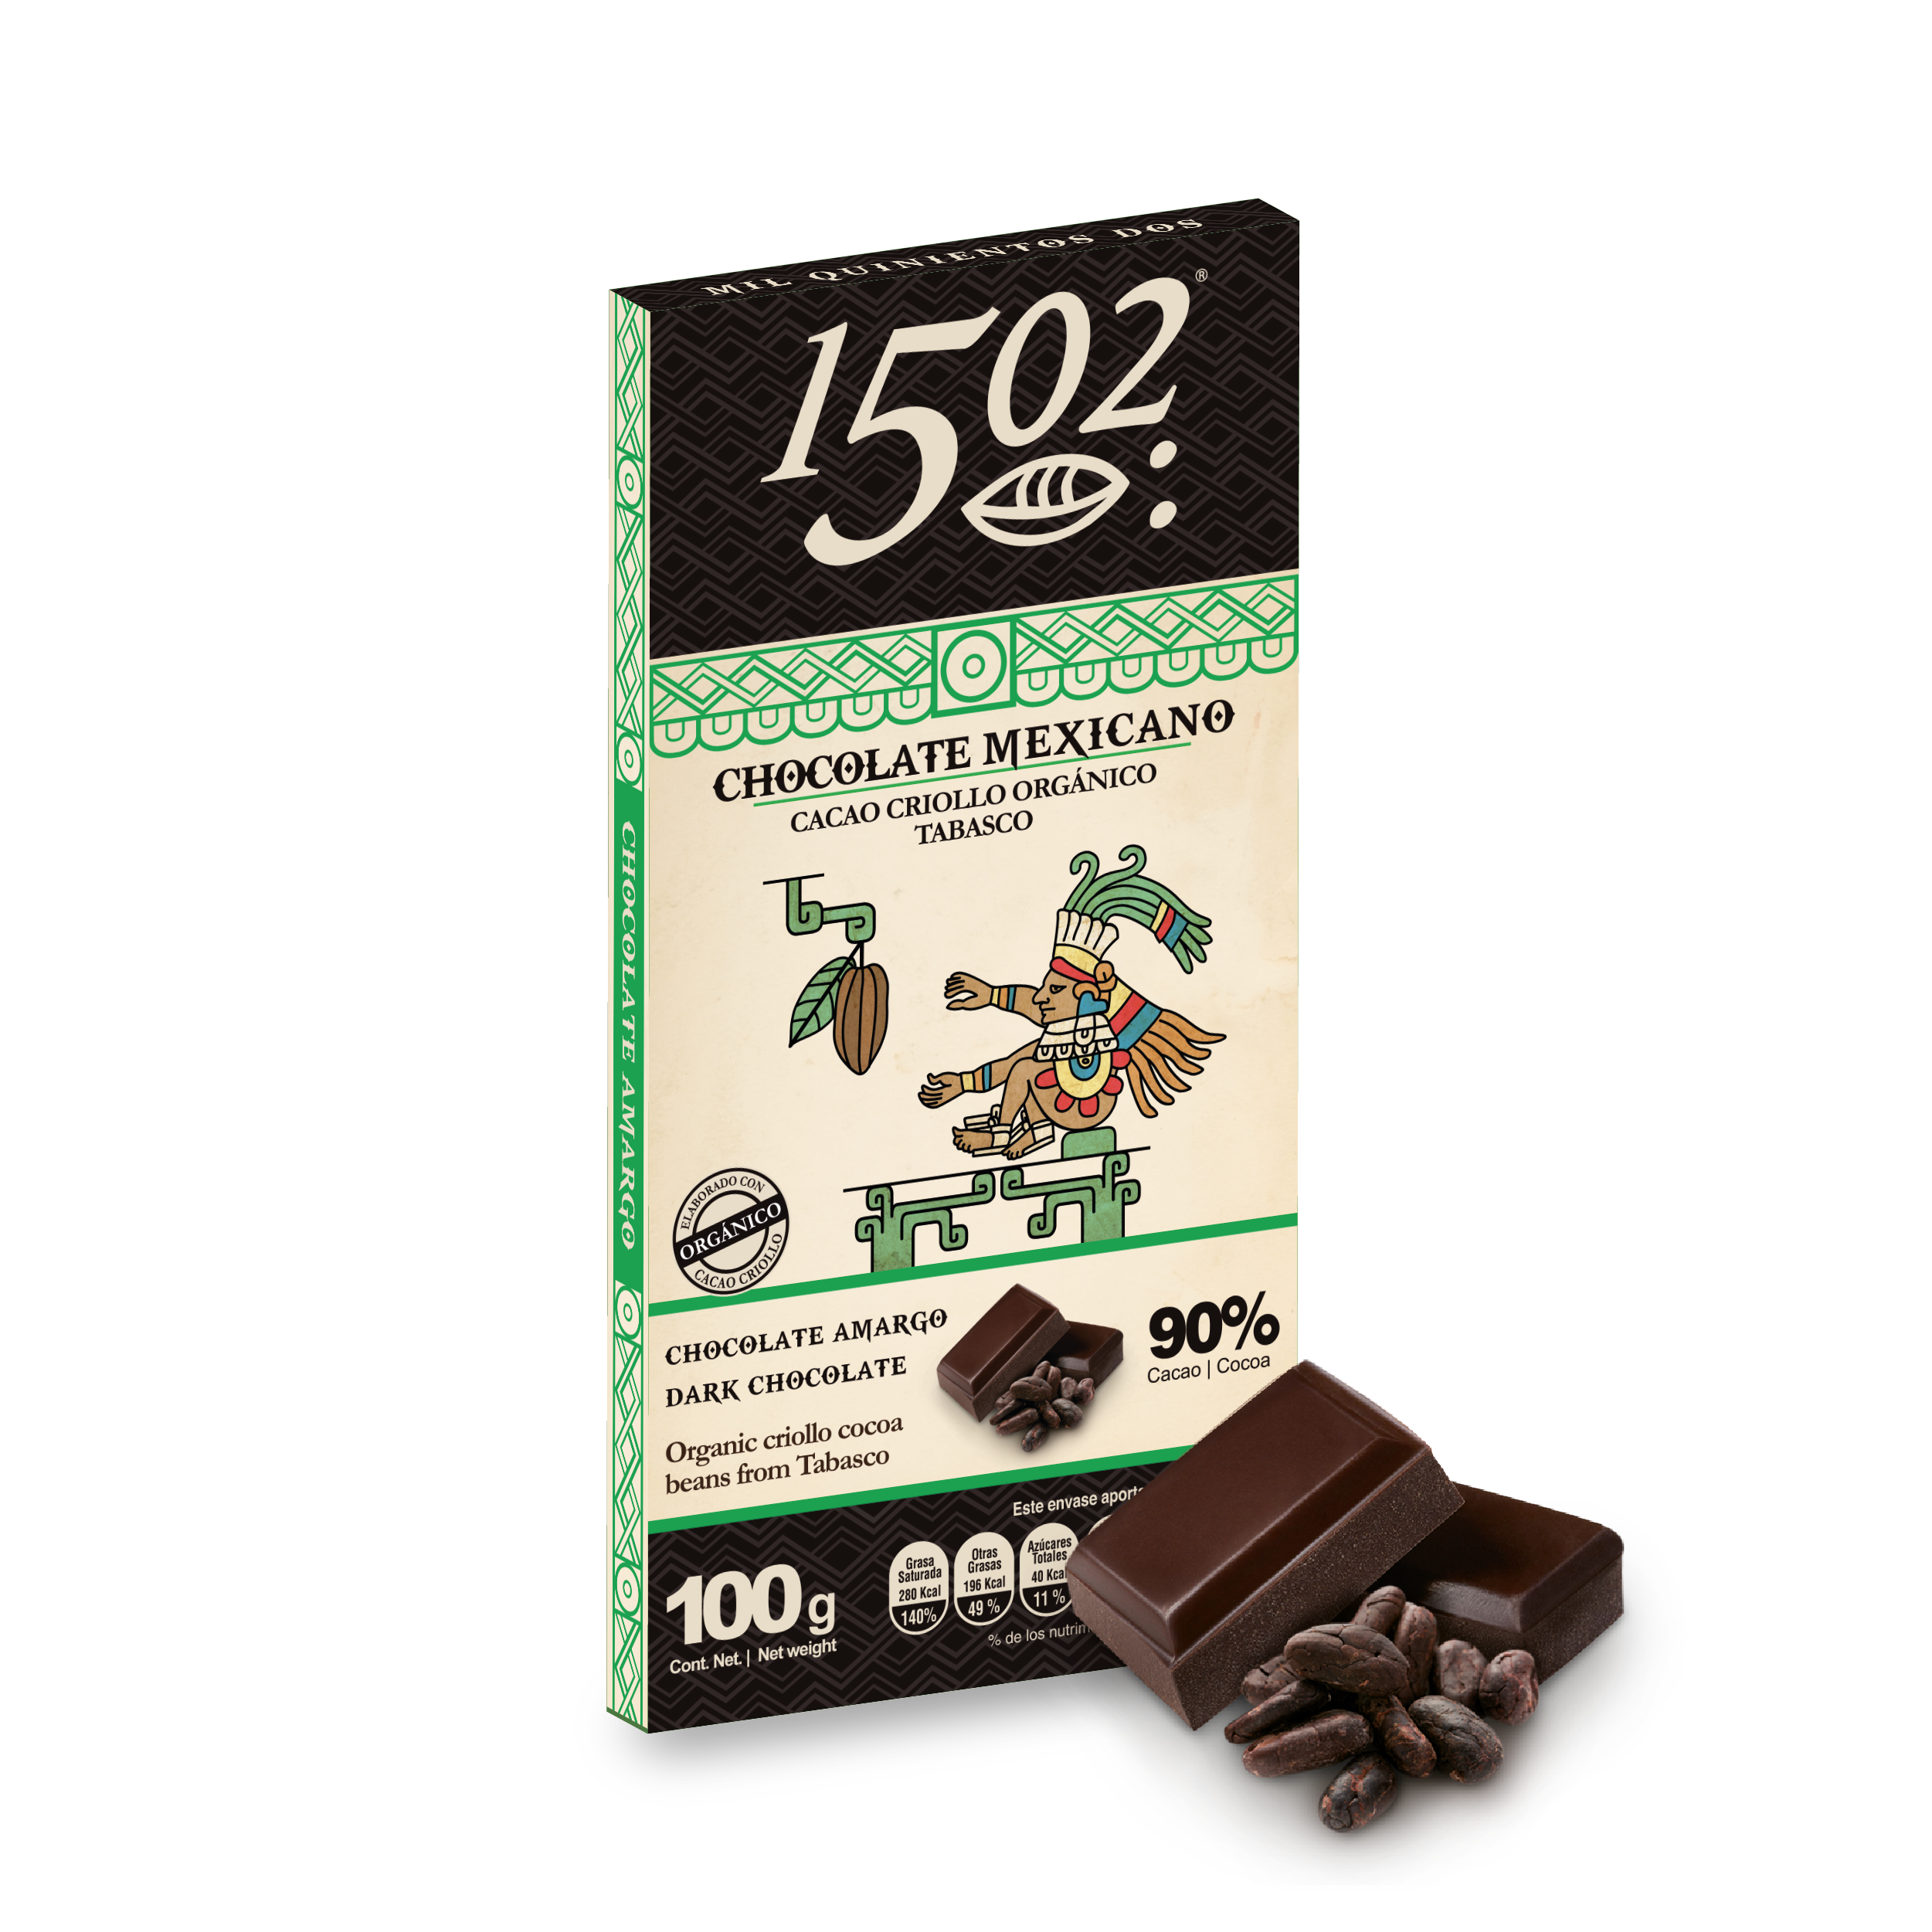 1502 Organic Chocolate 90% Cacao. 12 pcs./case ($5.75 each).